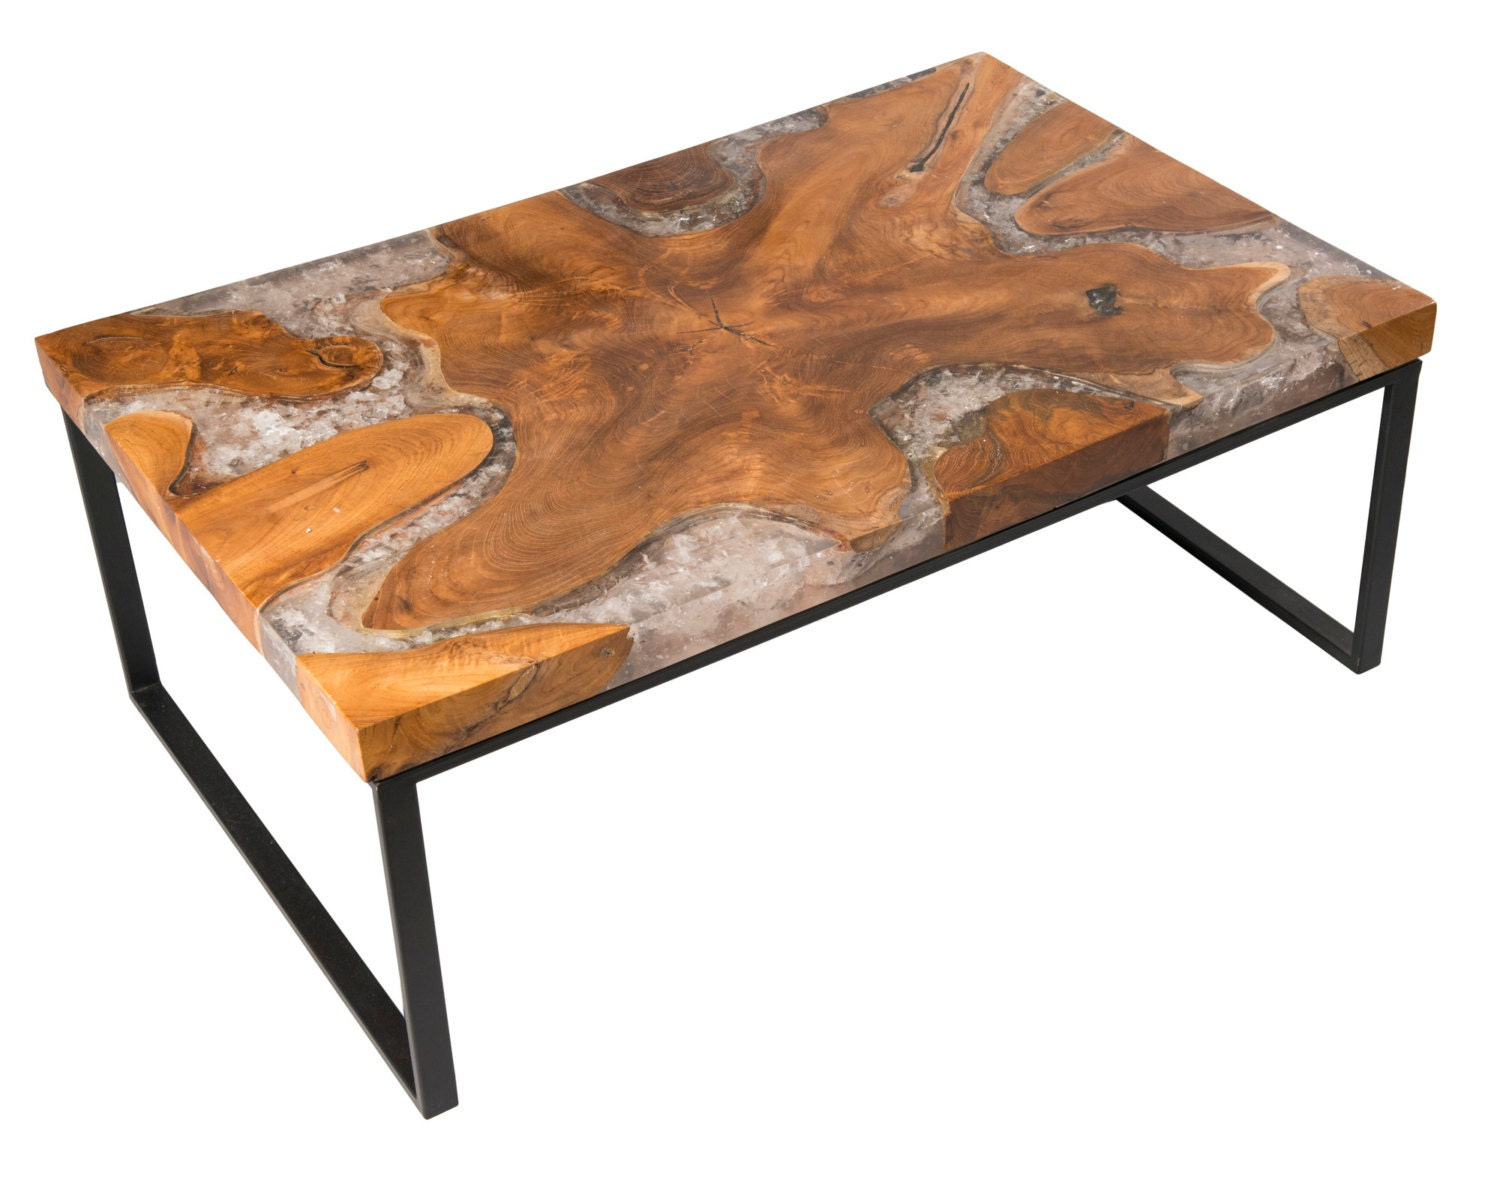 Very Impressive portraiture of Teak Root Resin Coffee Table by AireCollection on Etsy with #C96D02 color and 1500x1200 pixels